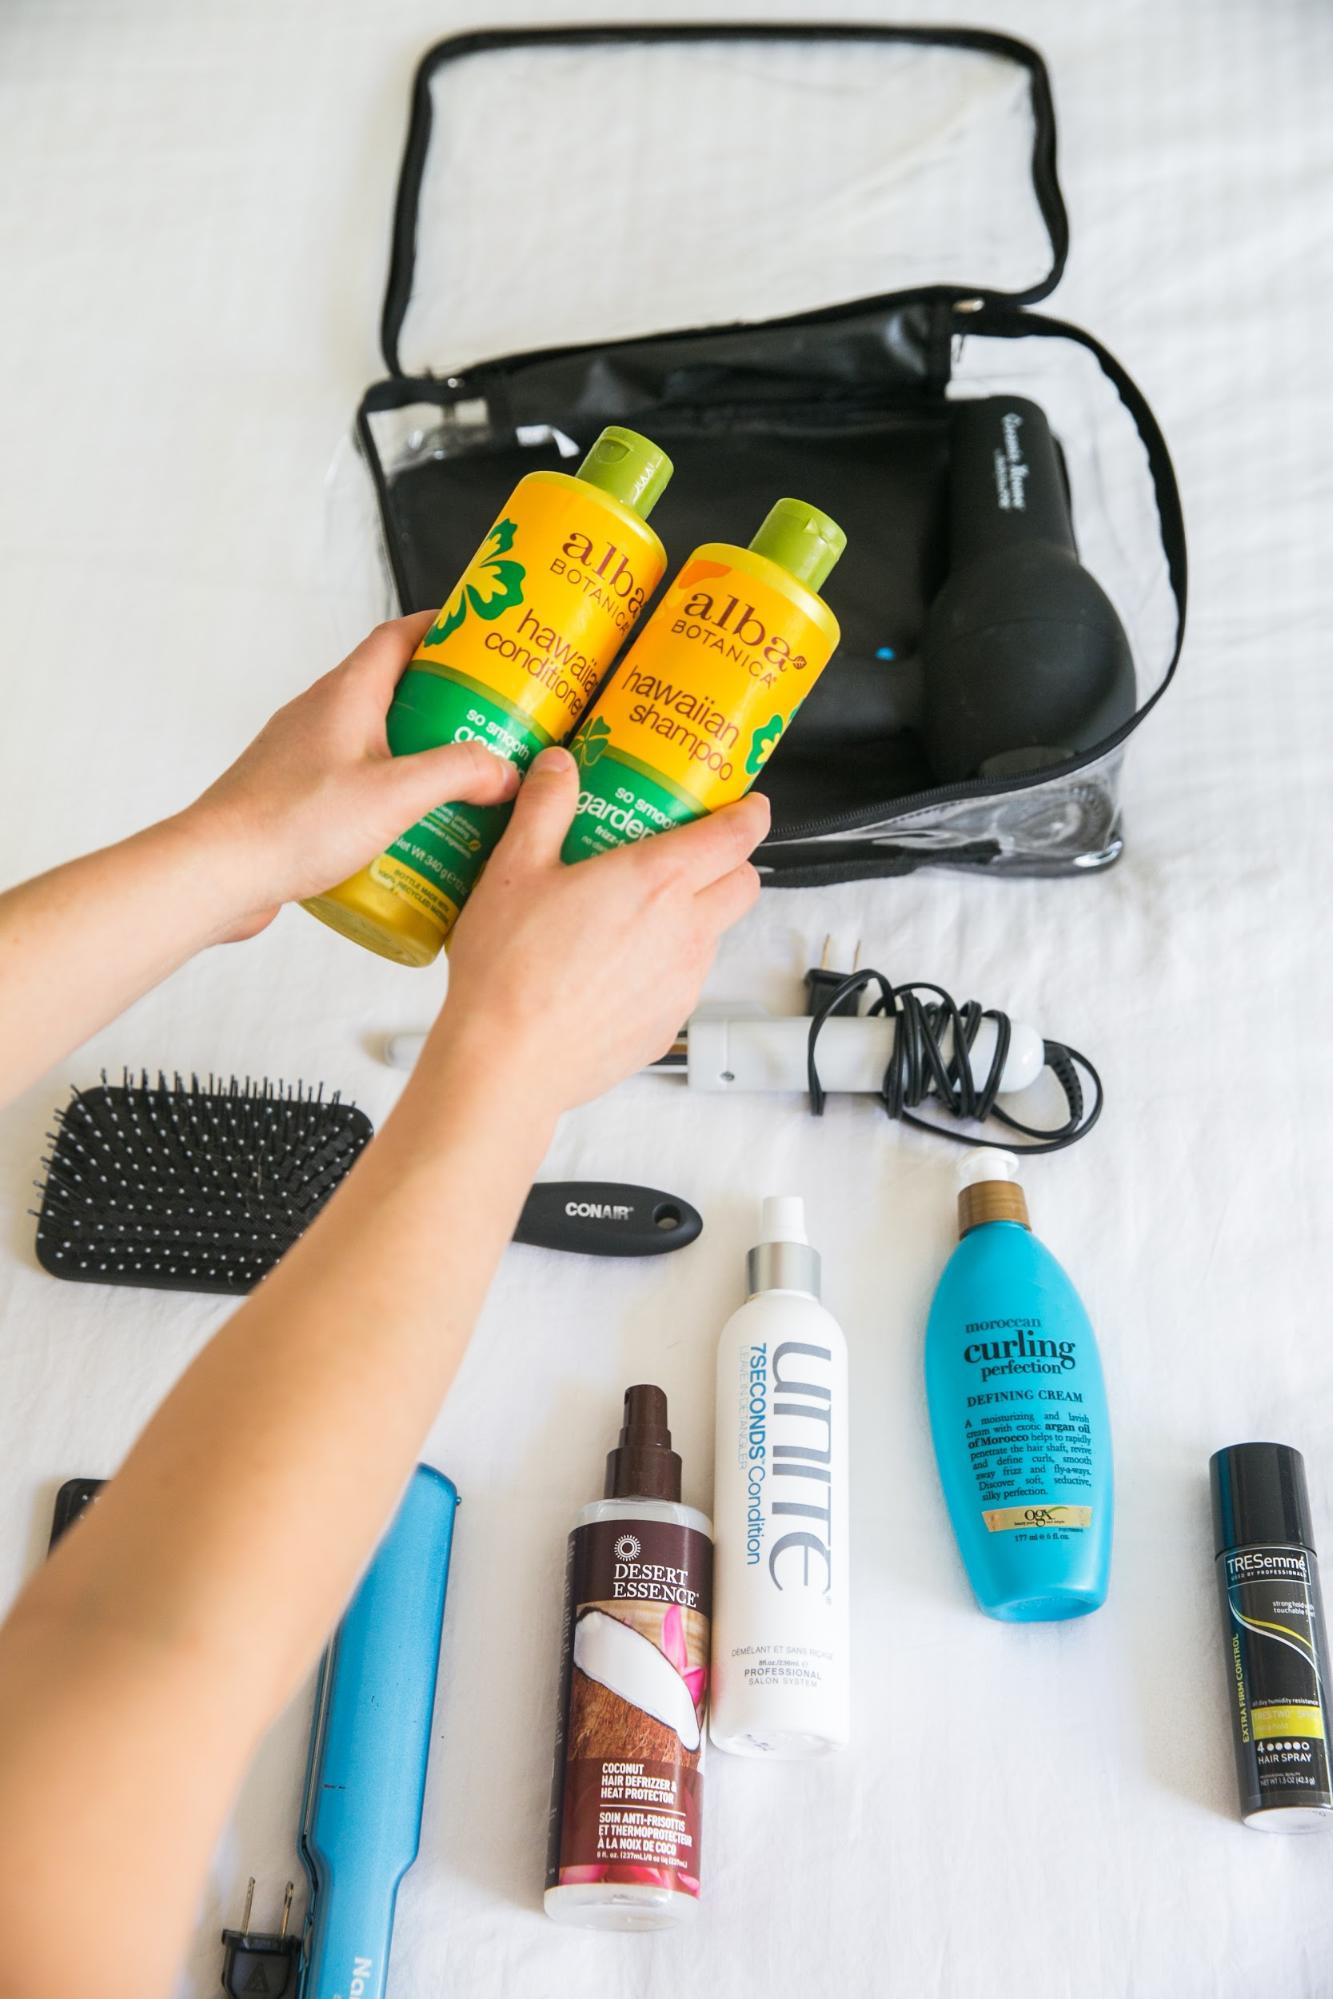 Alba Botanica Hawaiian shampoo and conditioner for travel hair products